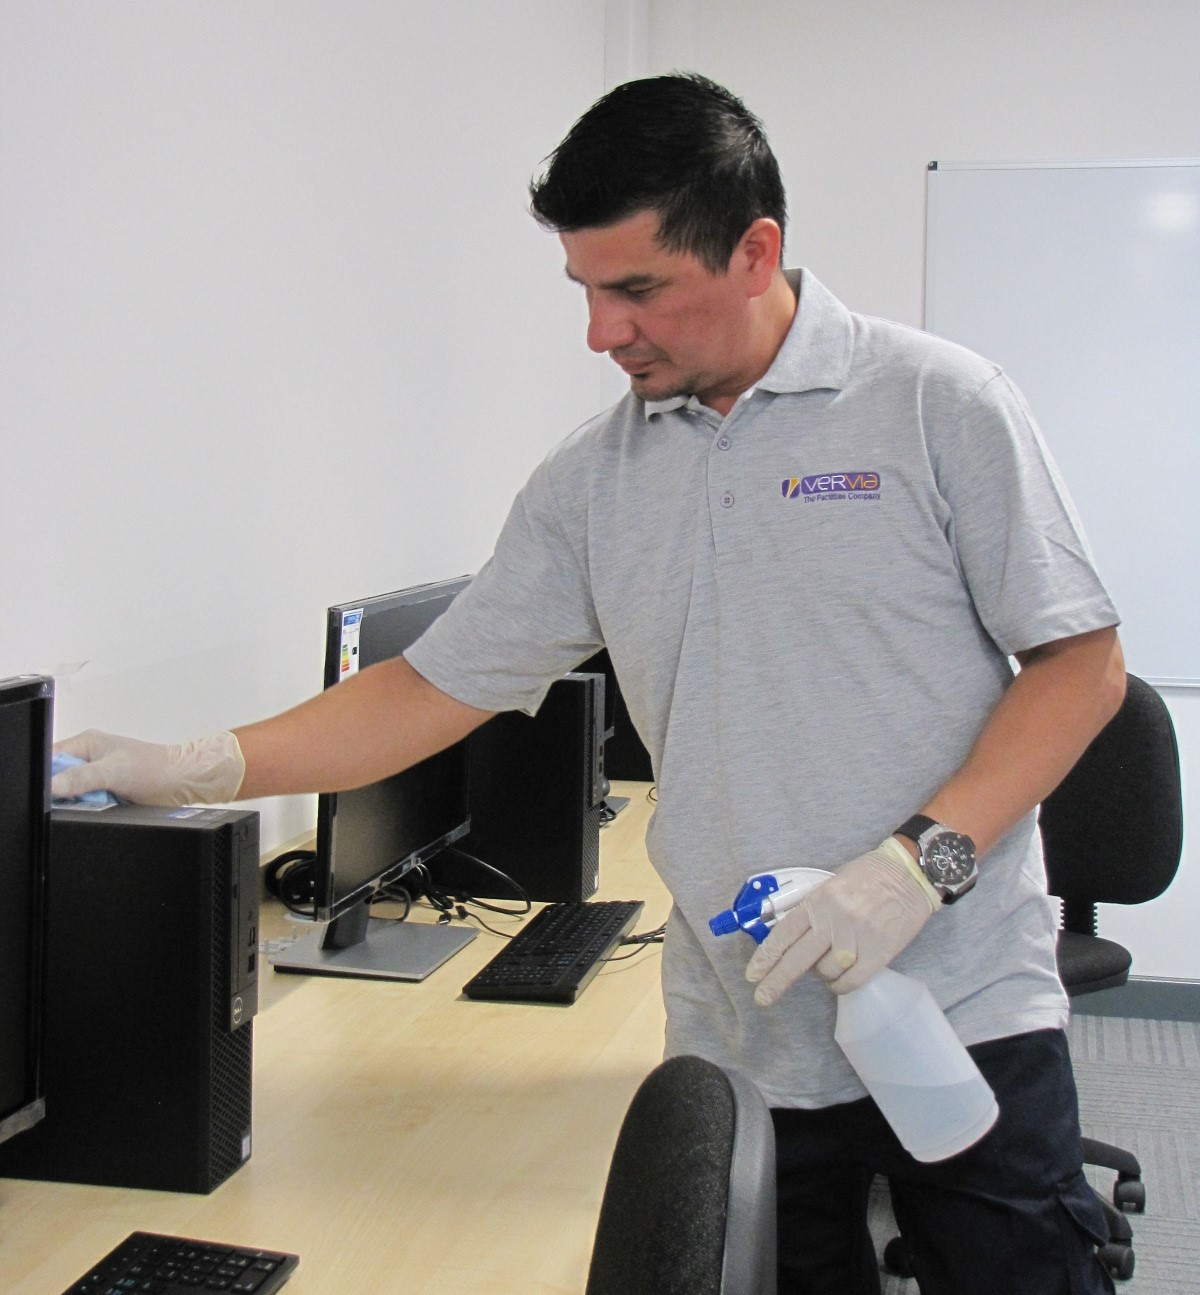 Man cleaning a computer